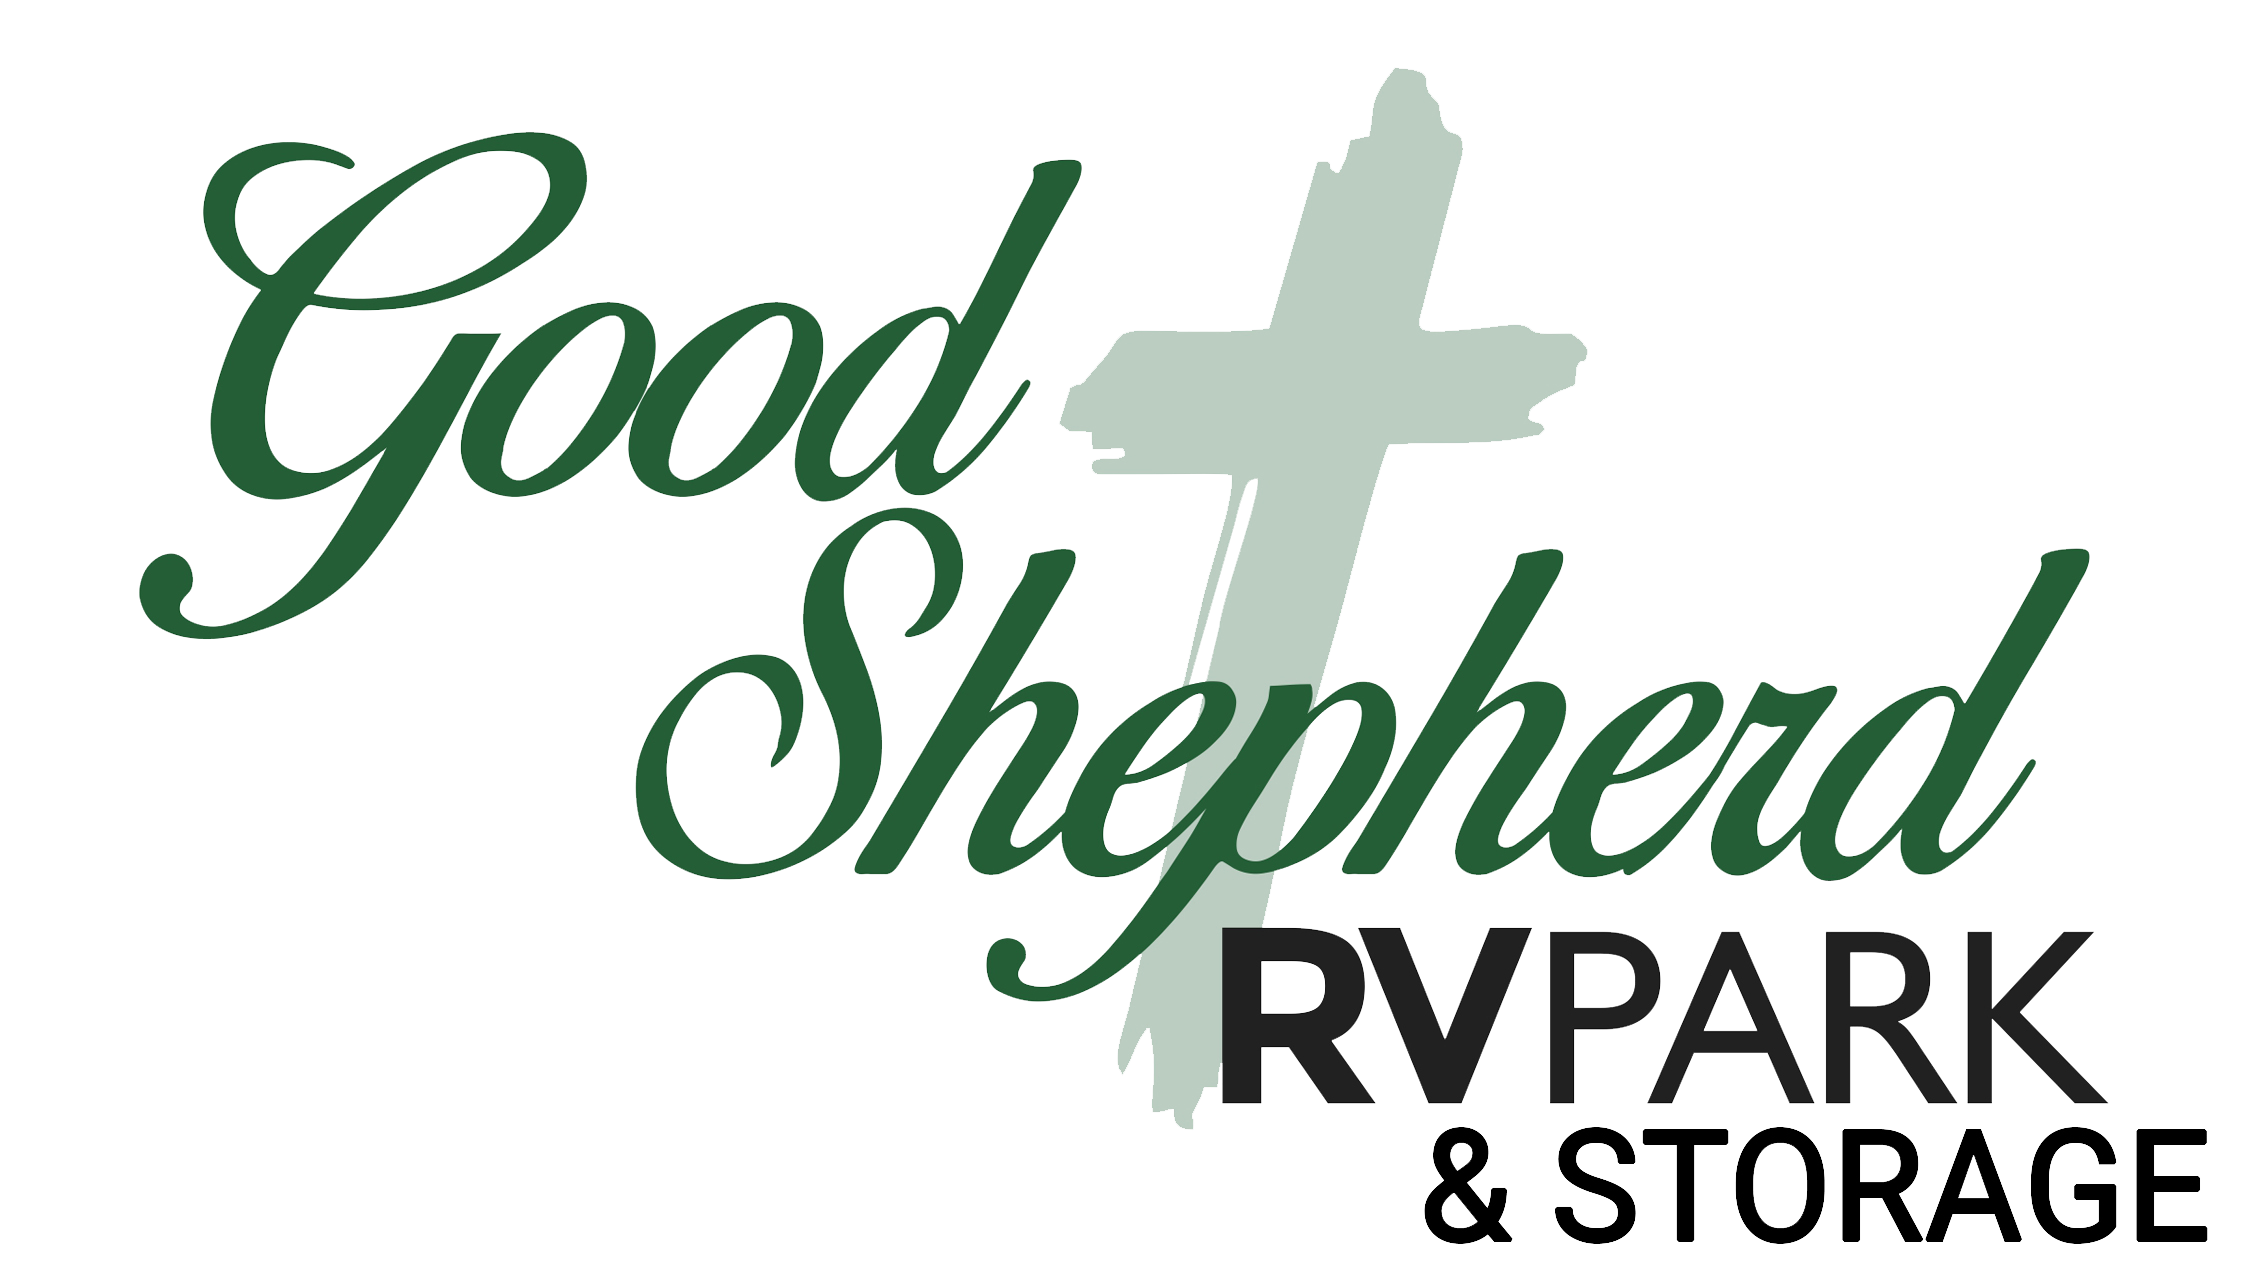 Good Shepherd RV Park